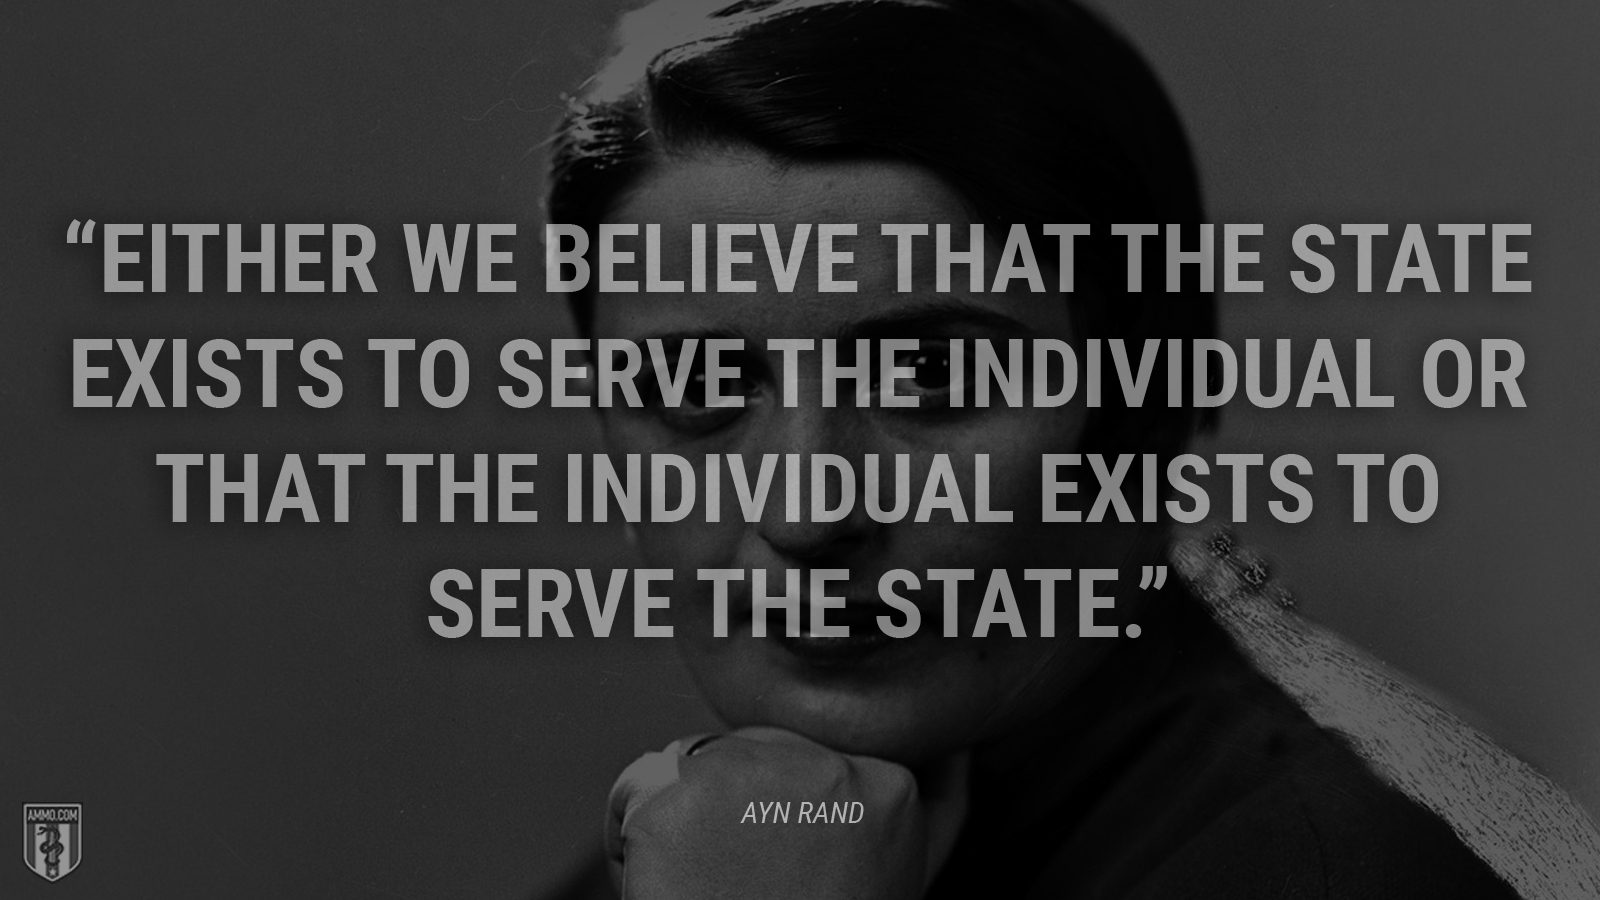 """Either we believe that the State exists to serve the individual or that the individual exists to serve the State."" - Ayn Rand"